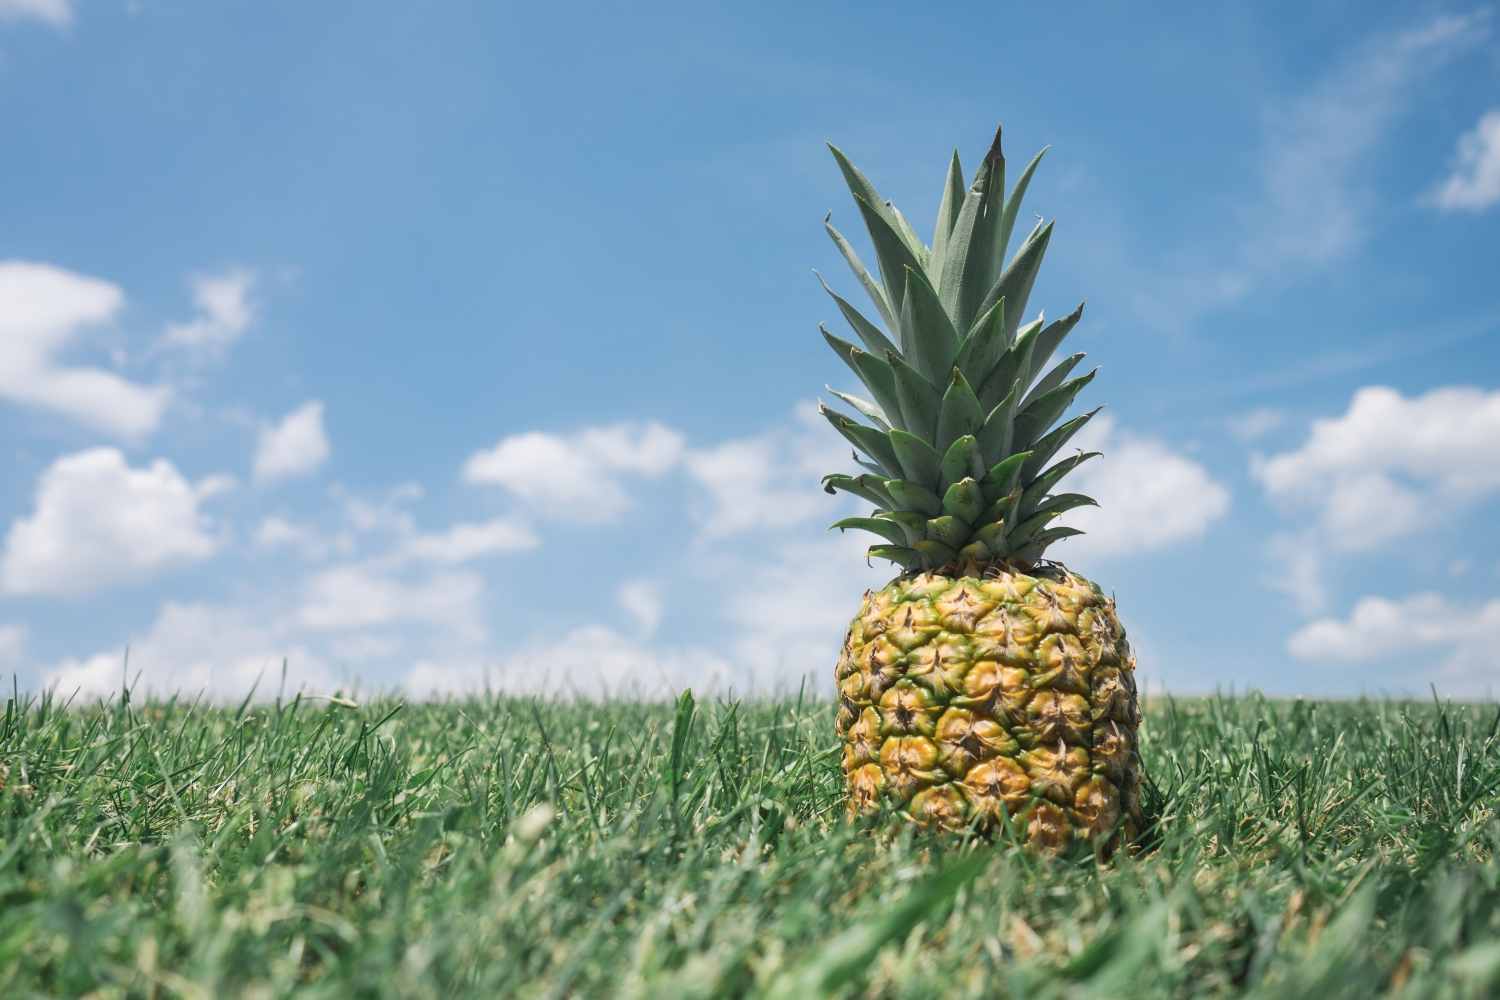 Another basic fruit: Pineapple